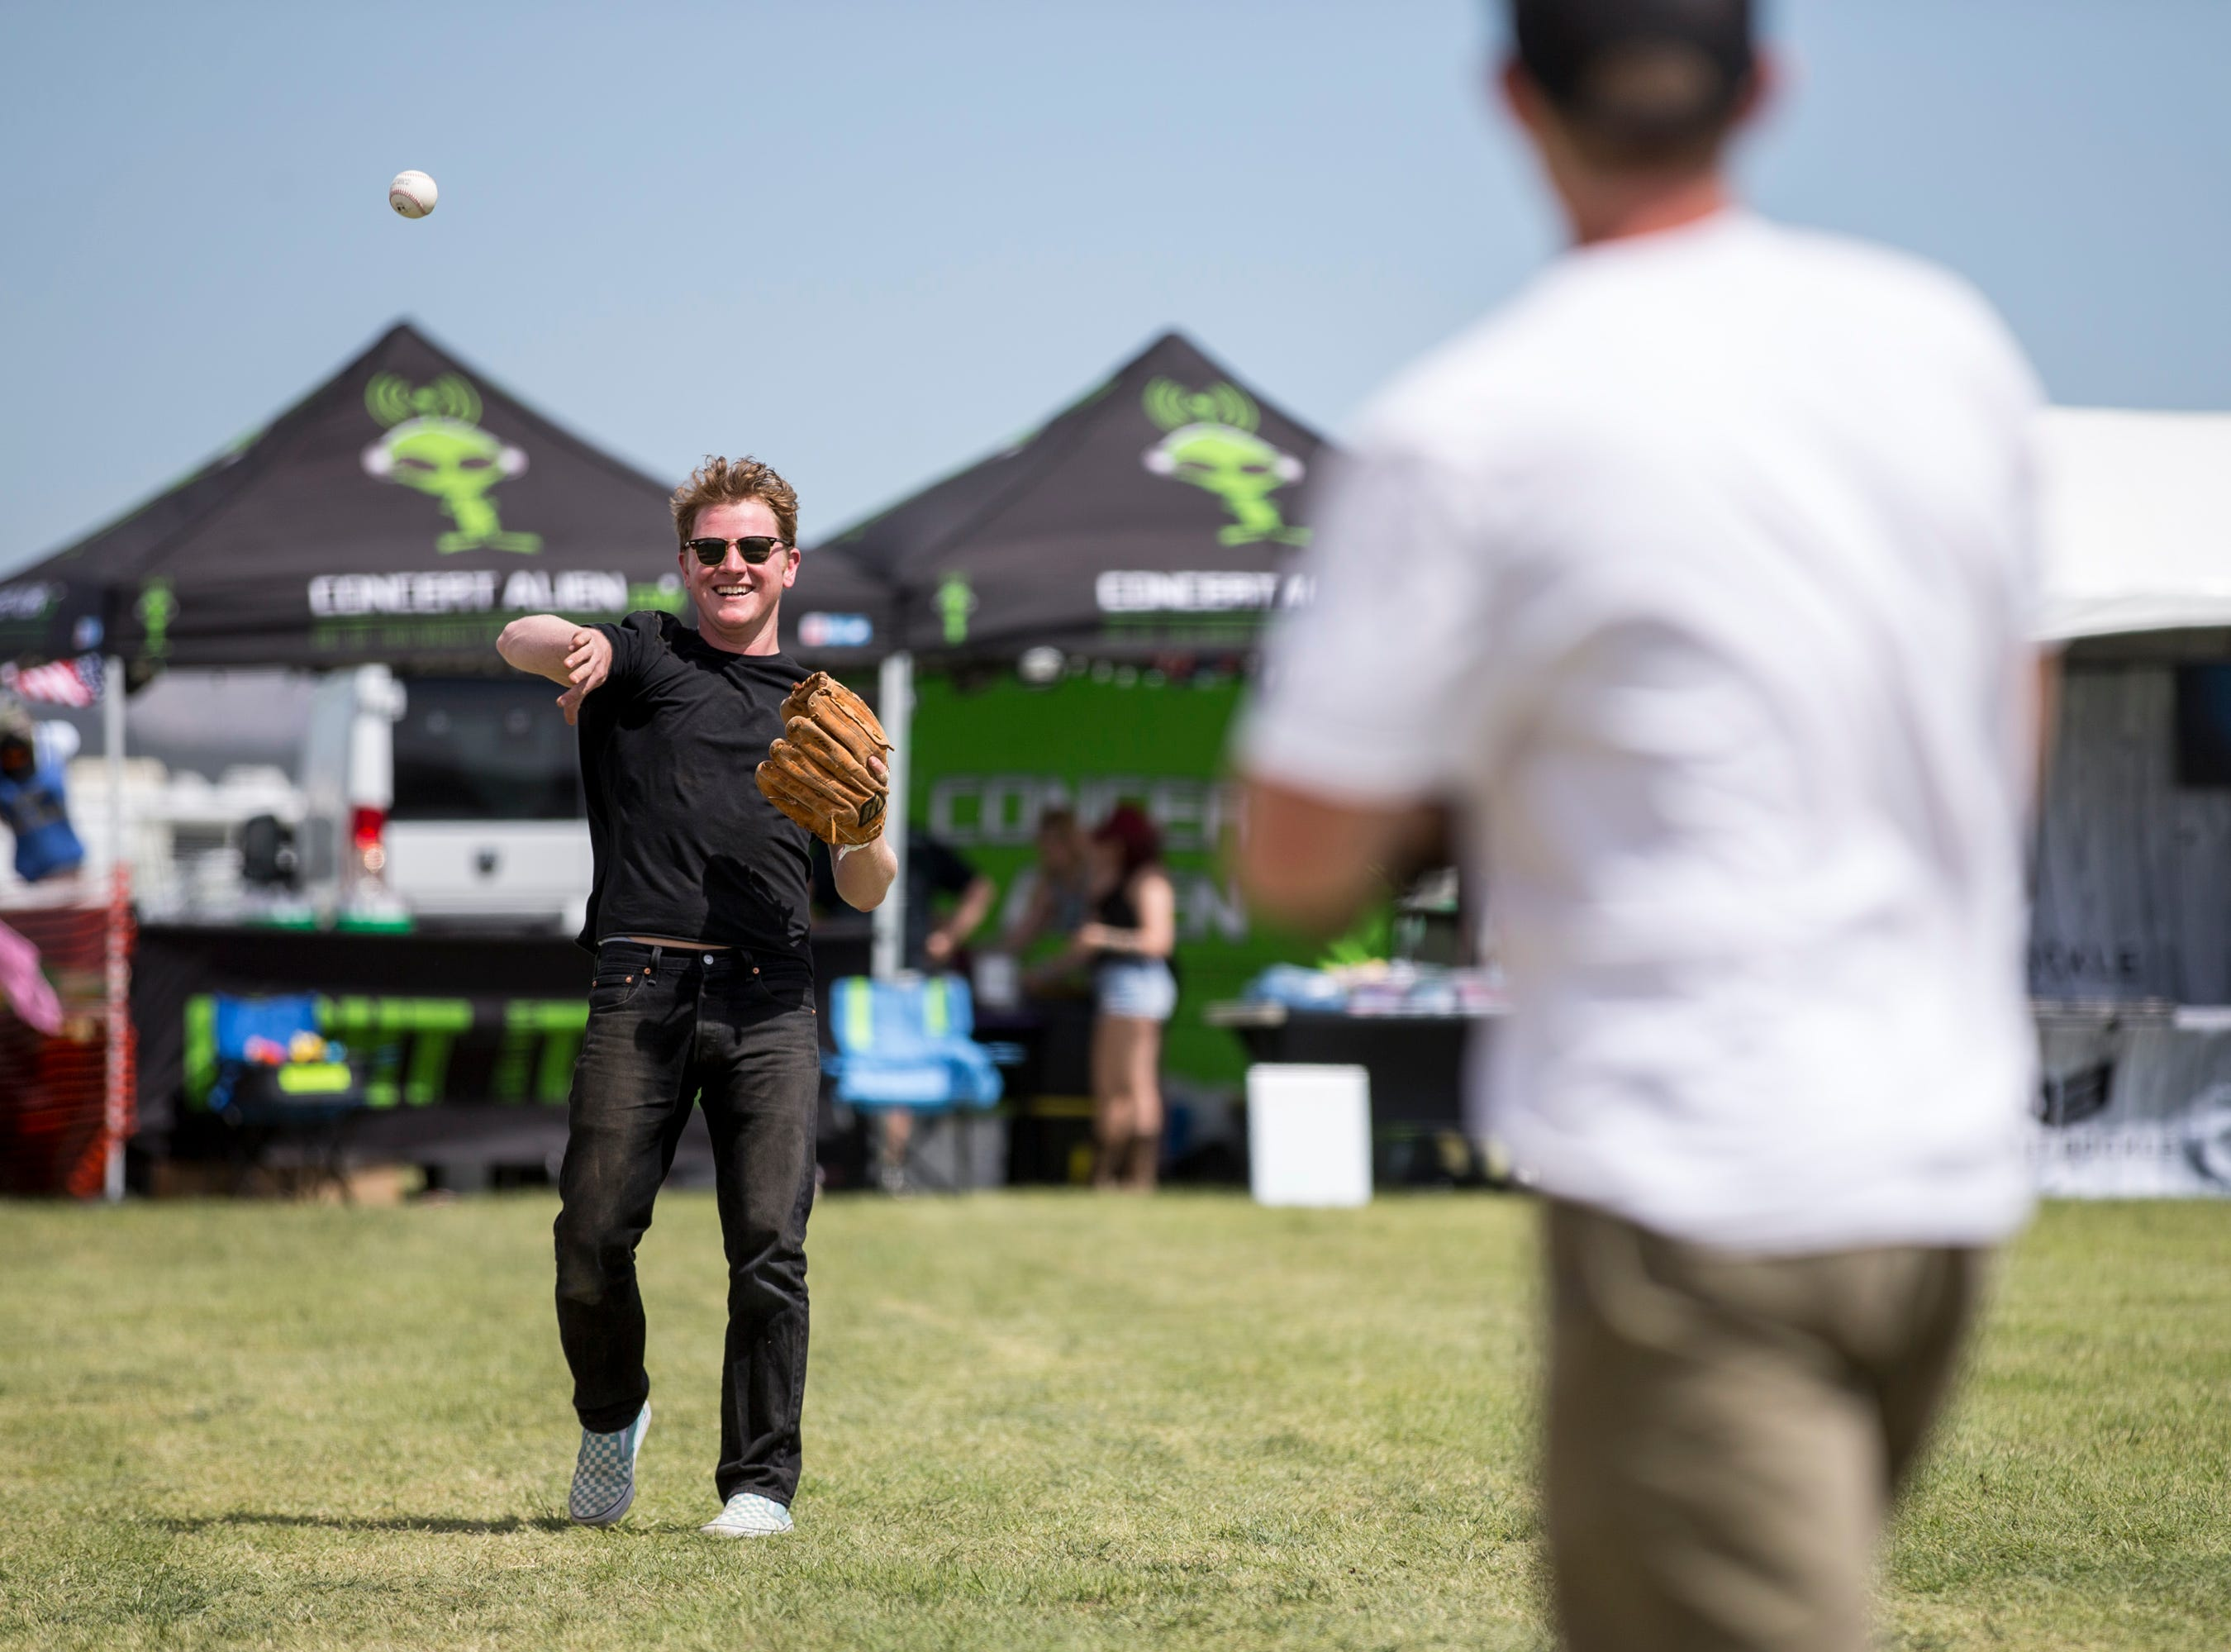 Tyler Sikora (left) plays catch with Christian Dean on April 11, 2019, during Day 1 of Country Thunder Arizona in Florence.